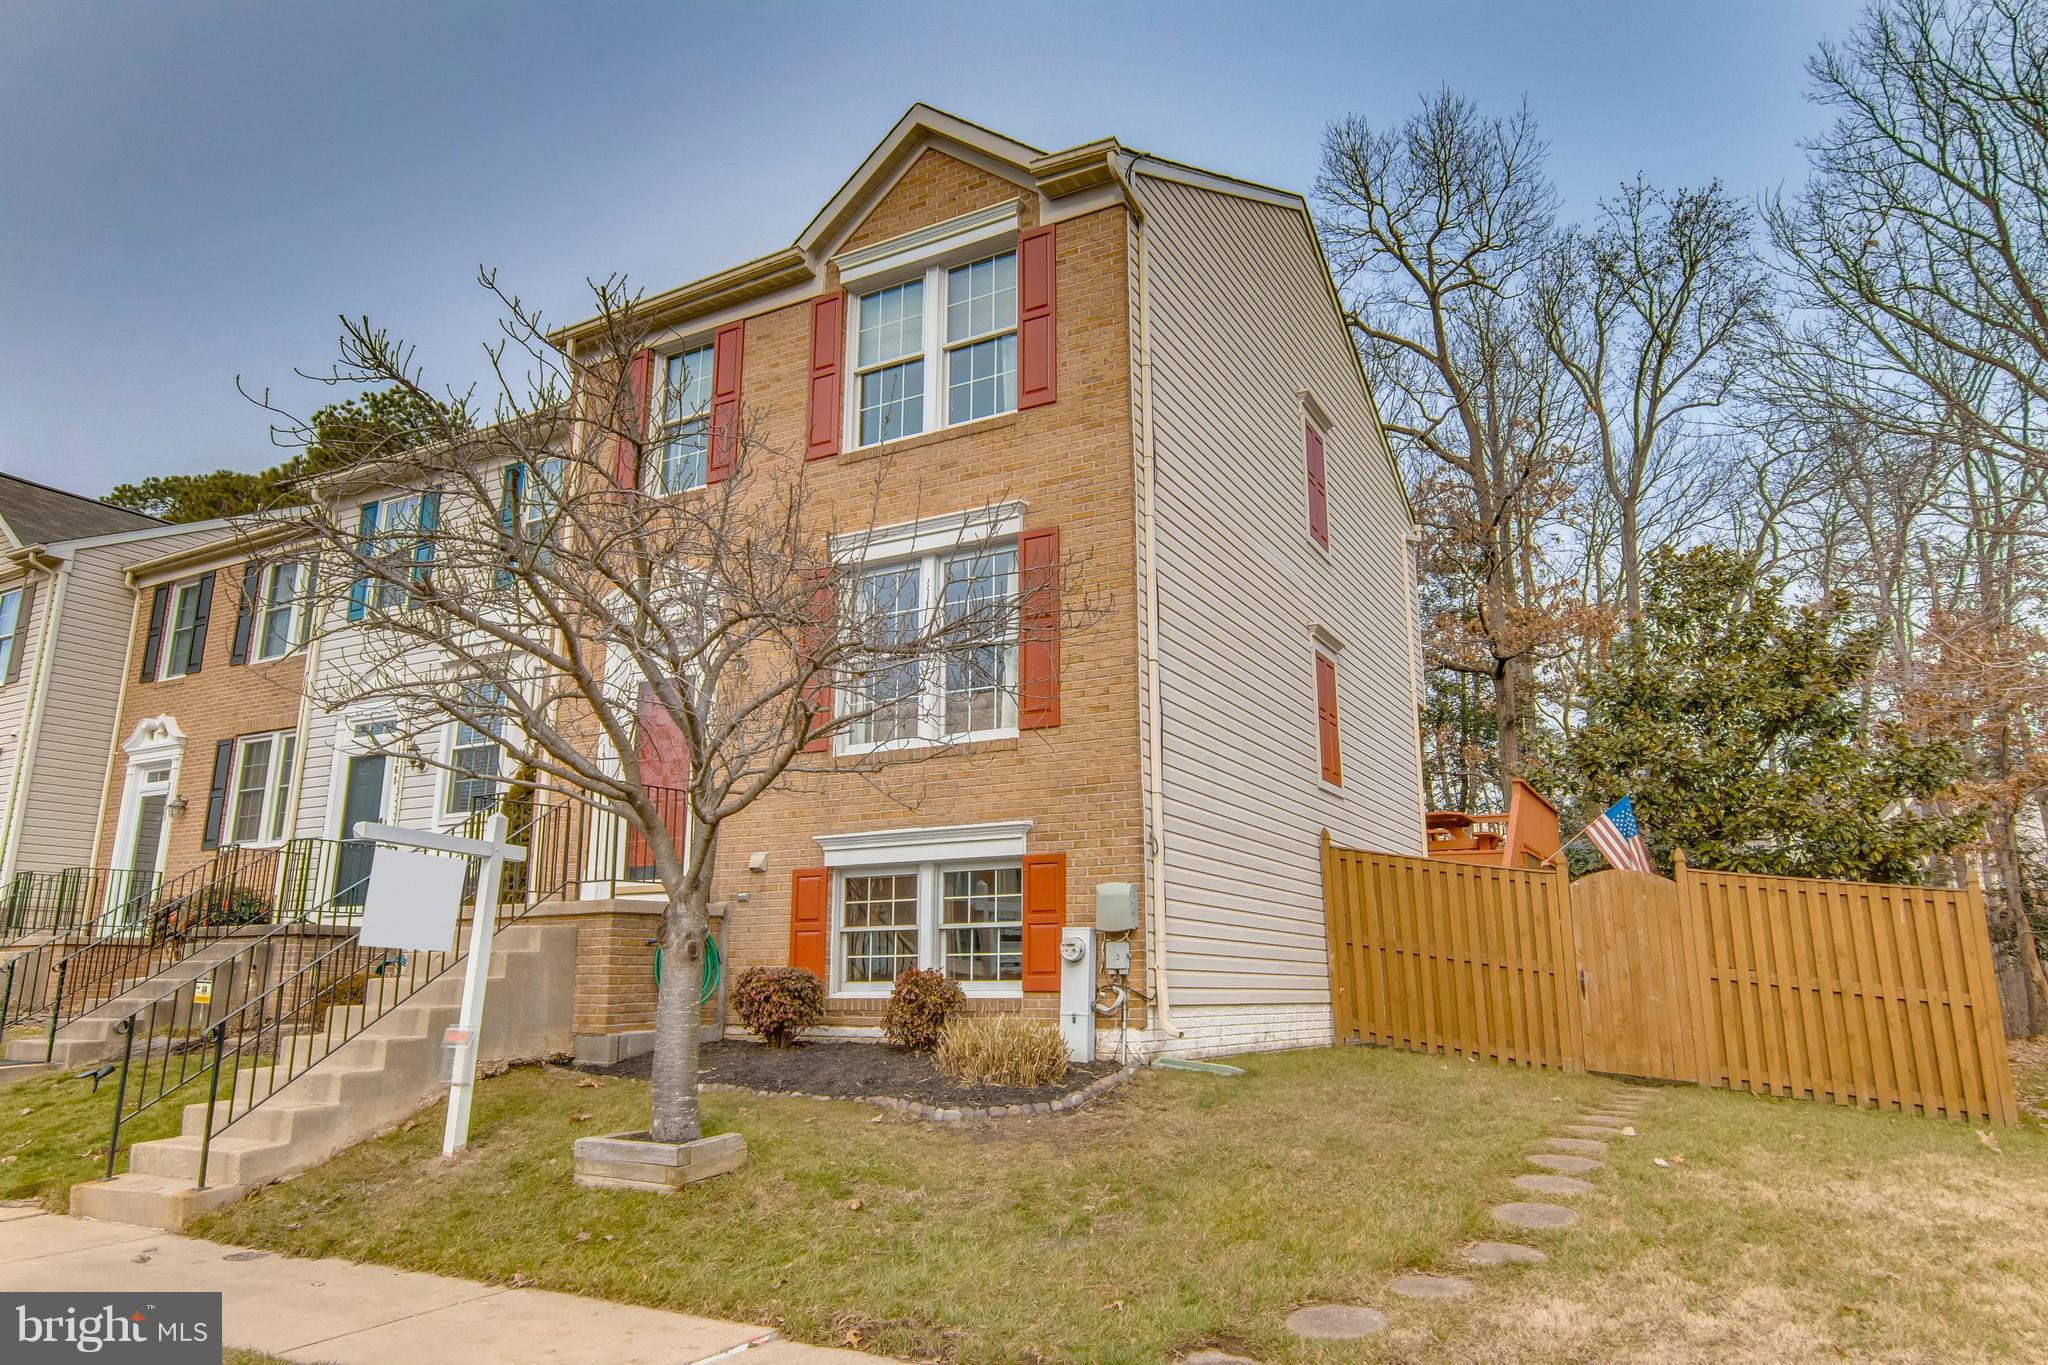 1159 DOUBLE CHESTNUT COURT, CHESTNUT HILL COVE, MD 21226